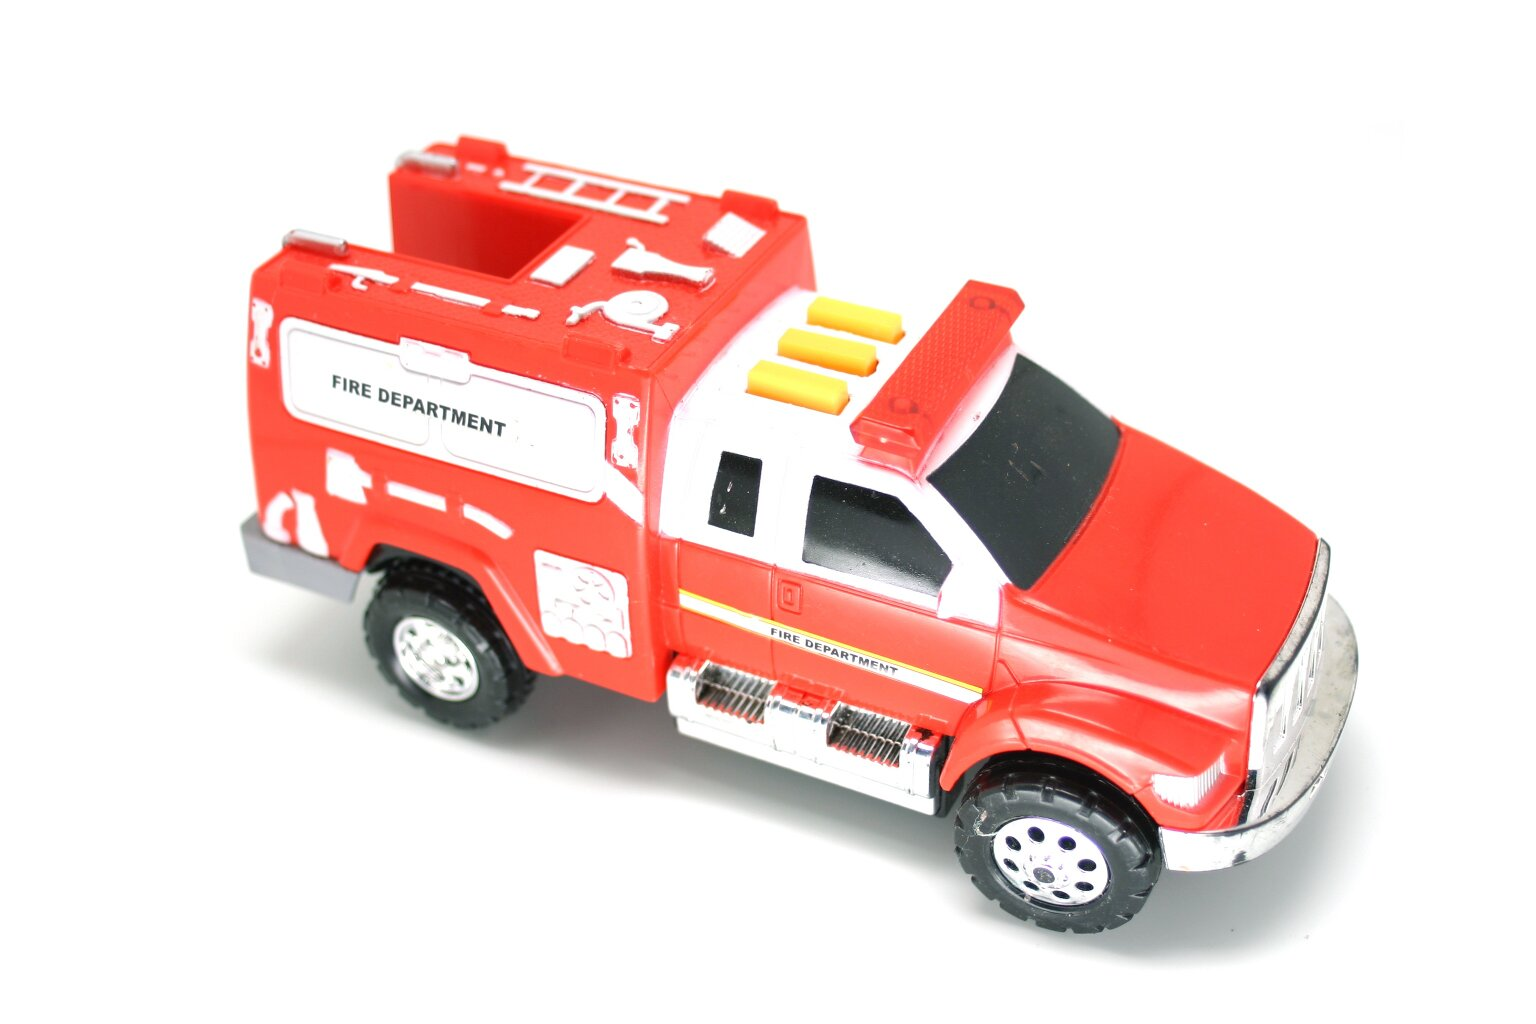 Red fire engine toy photo